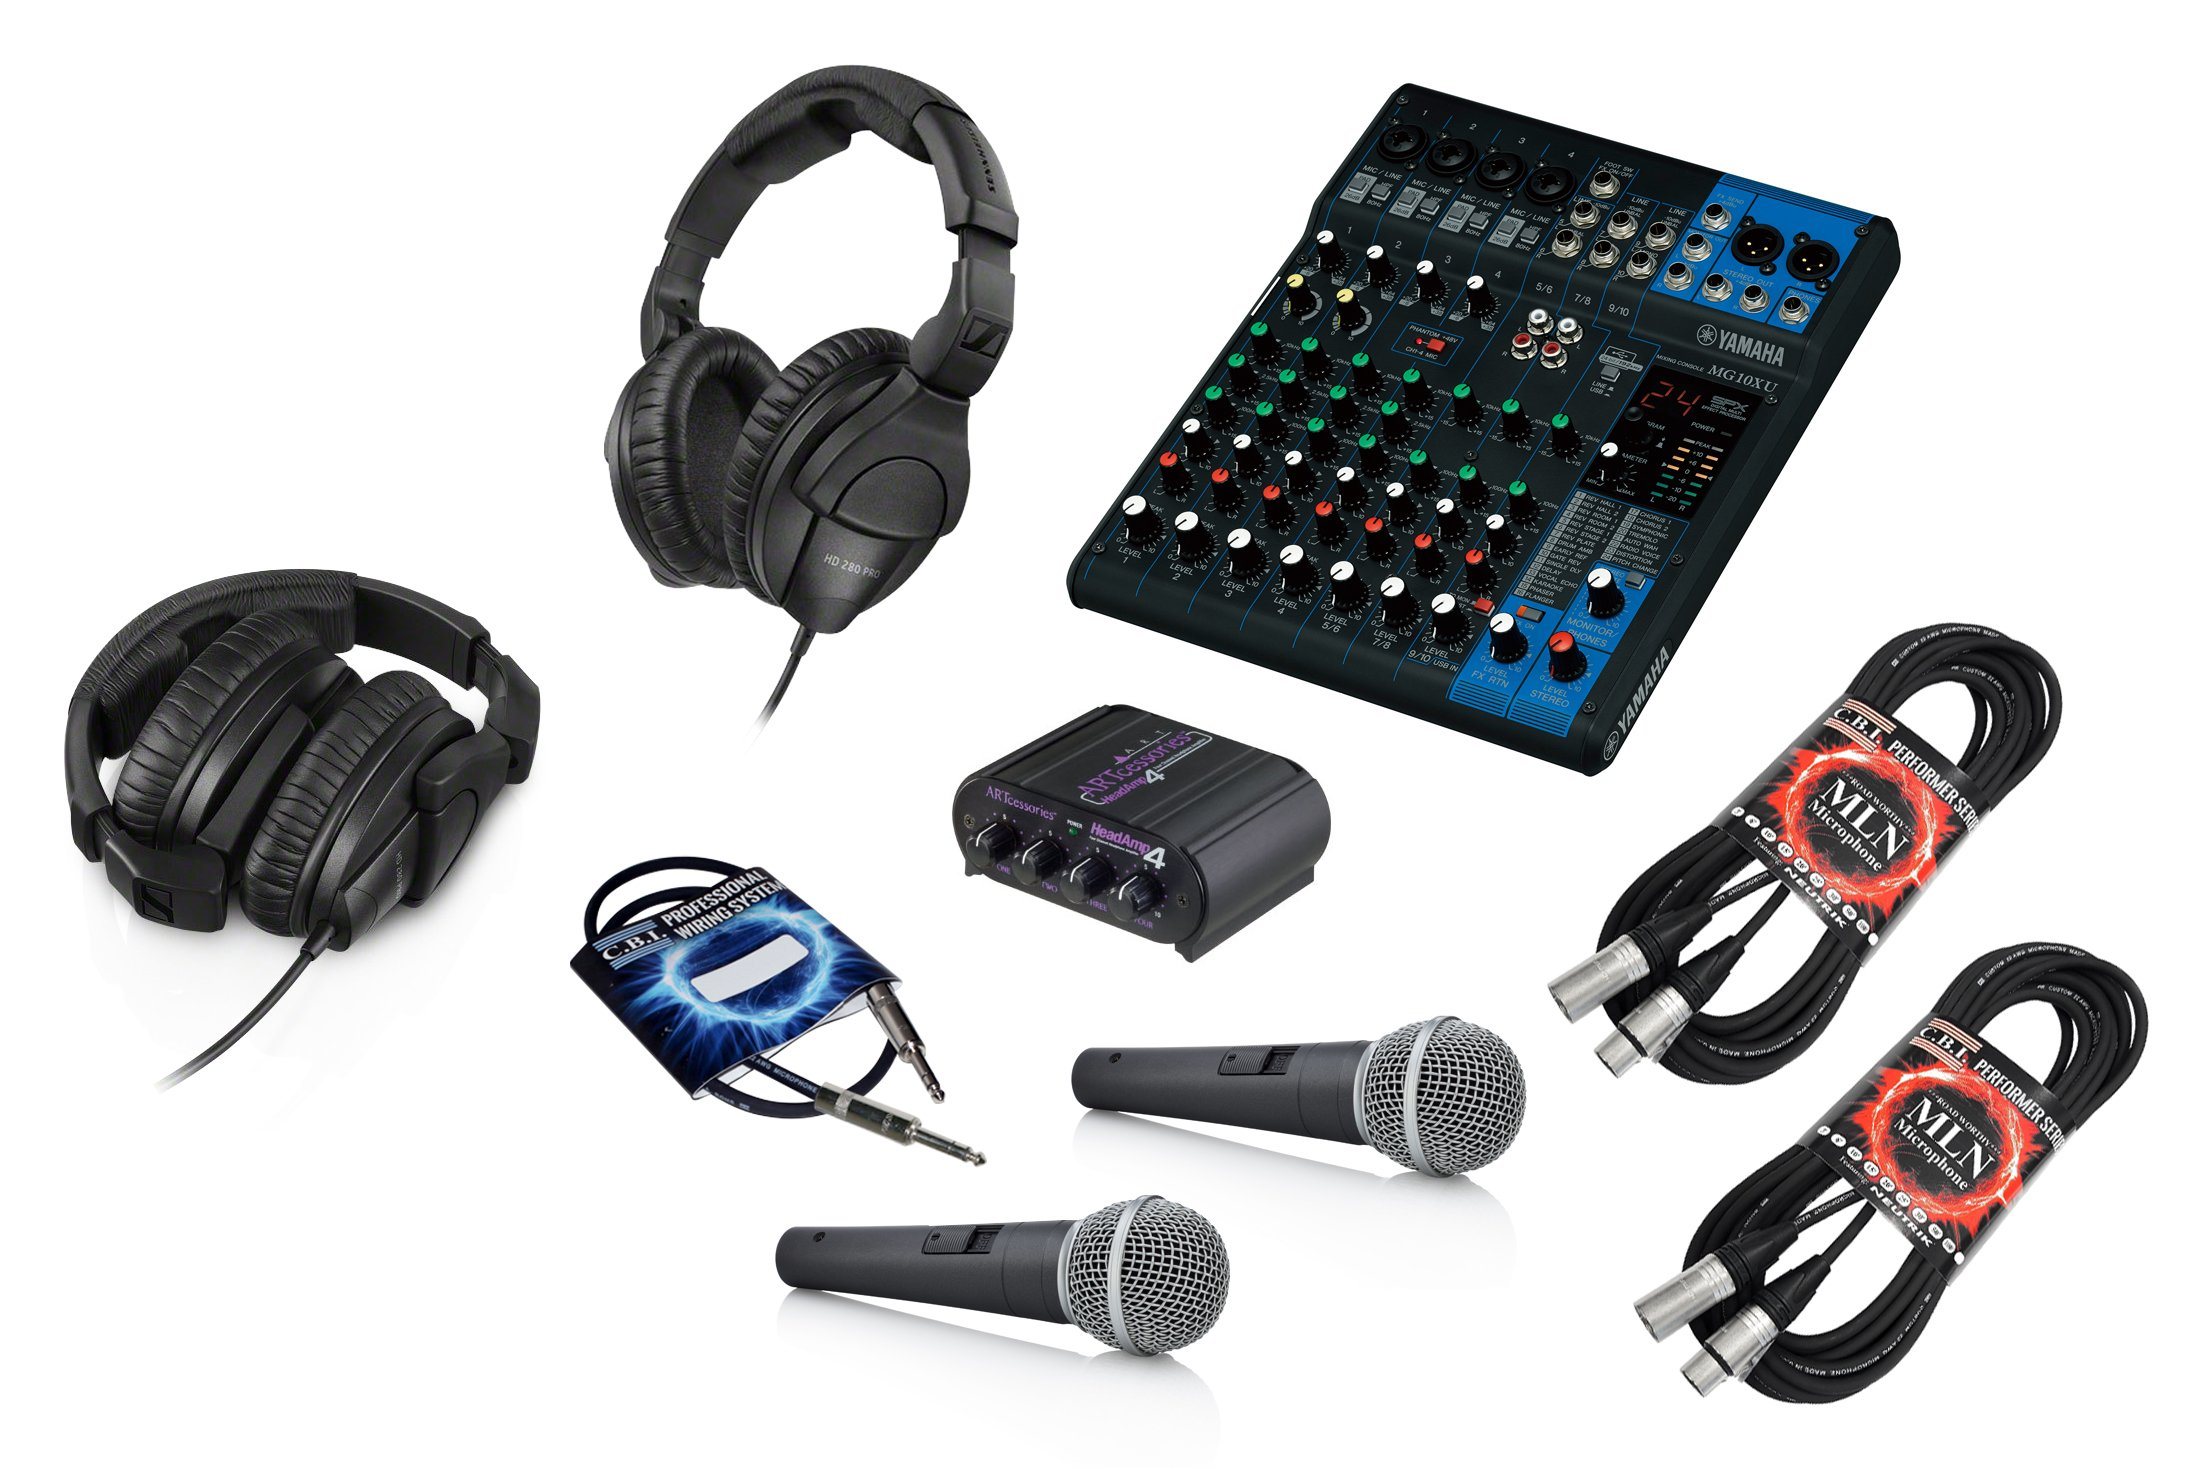 Yamaha MG10XU 10 Channel Mixing Console Bundle with Art Headamp 4 Stereo Headphone Amp, Sennheiser HD 280 PRO Headphones and Accessories - Podcast Kit (2 Person)